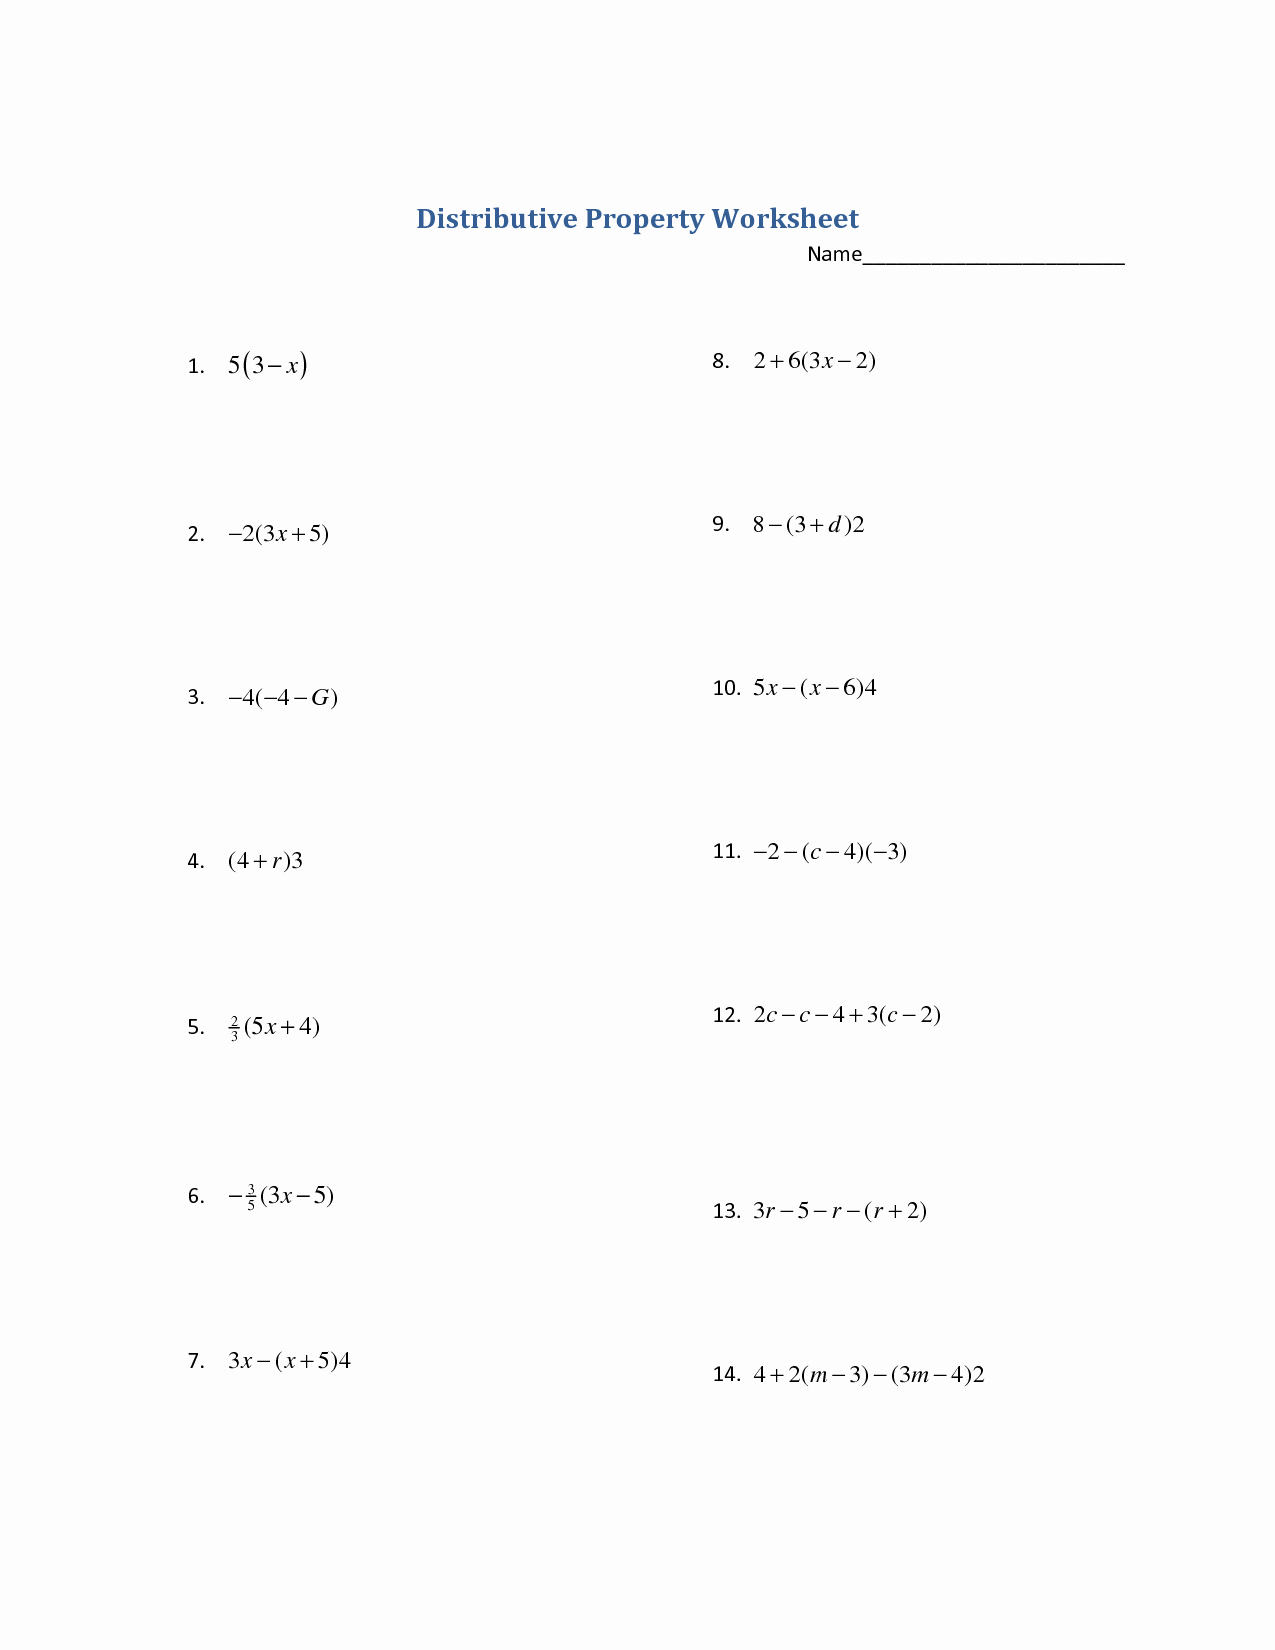 Distributive Property Equations Worksheet Inspirational 15 Best Of Distributive Property Worksheets Grade 7